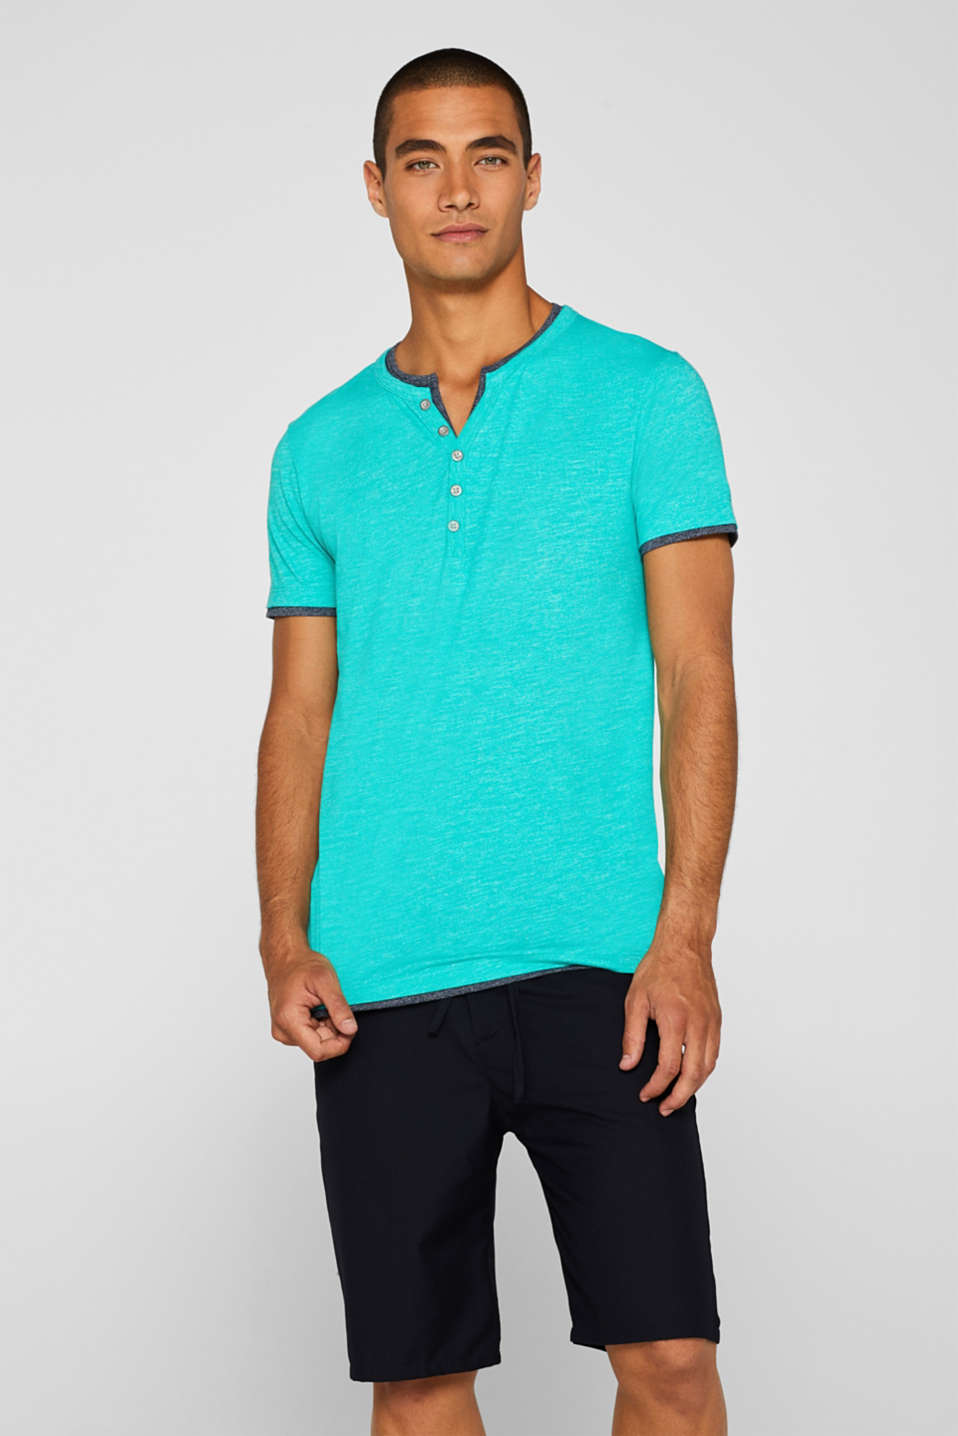 Esprit - Layered-effect Henley tee made of jersey